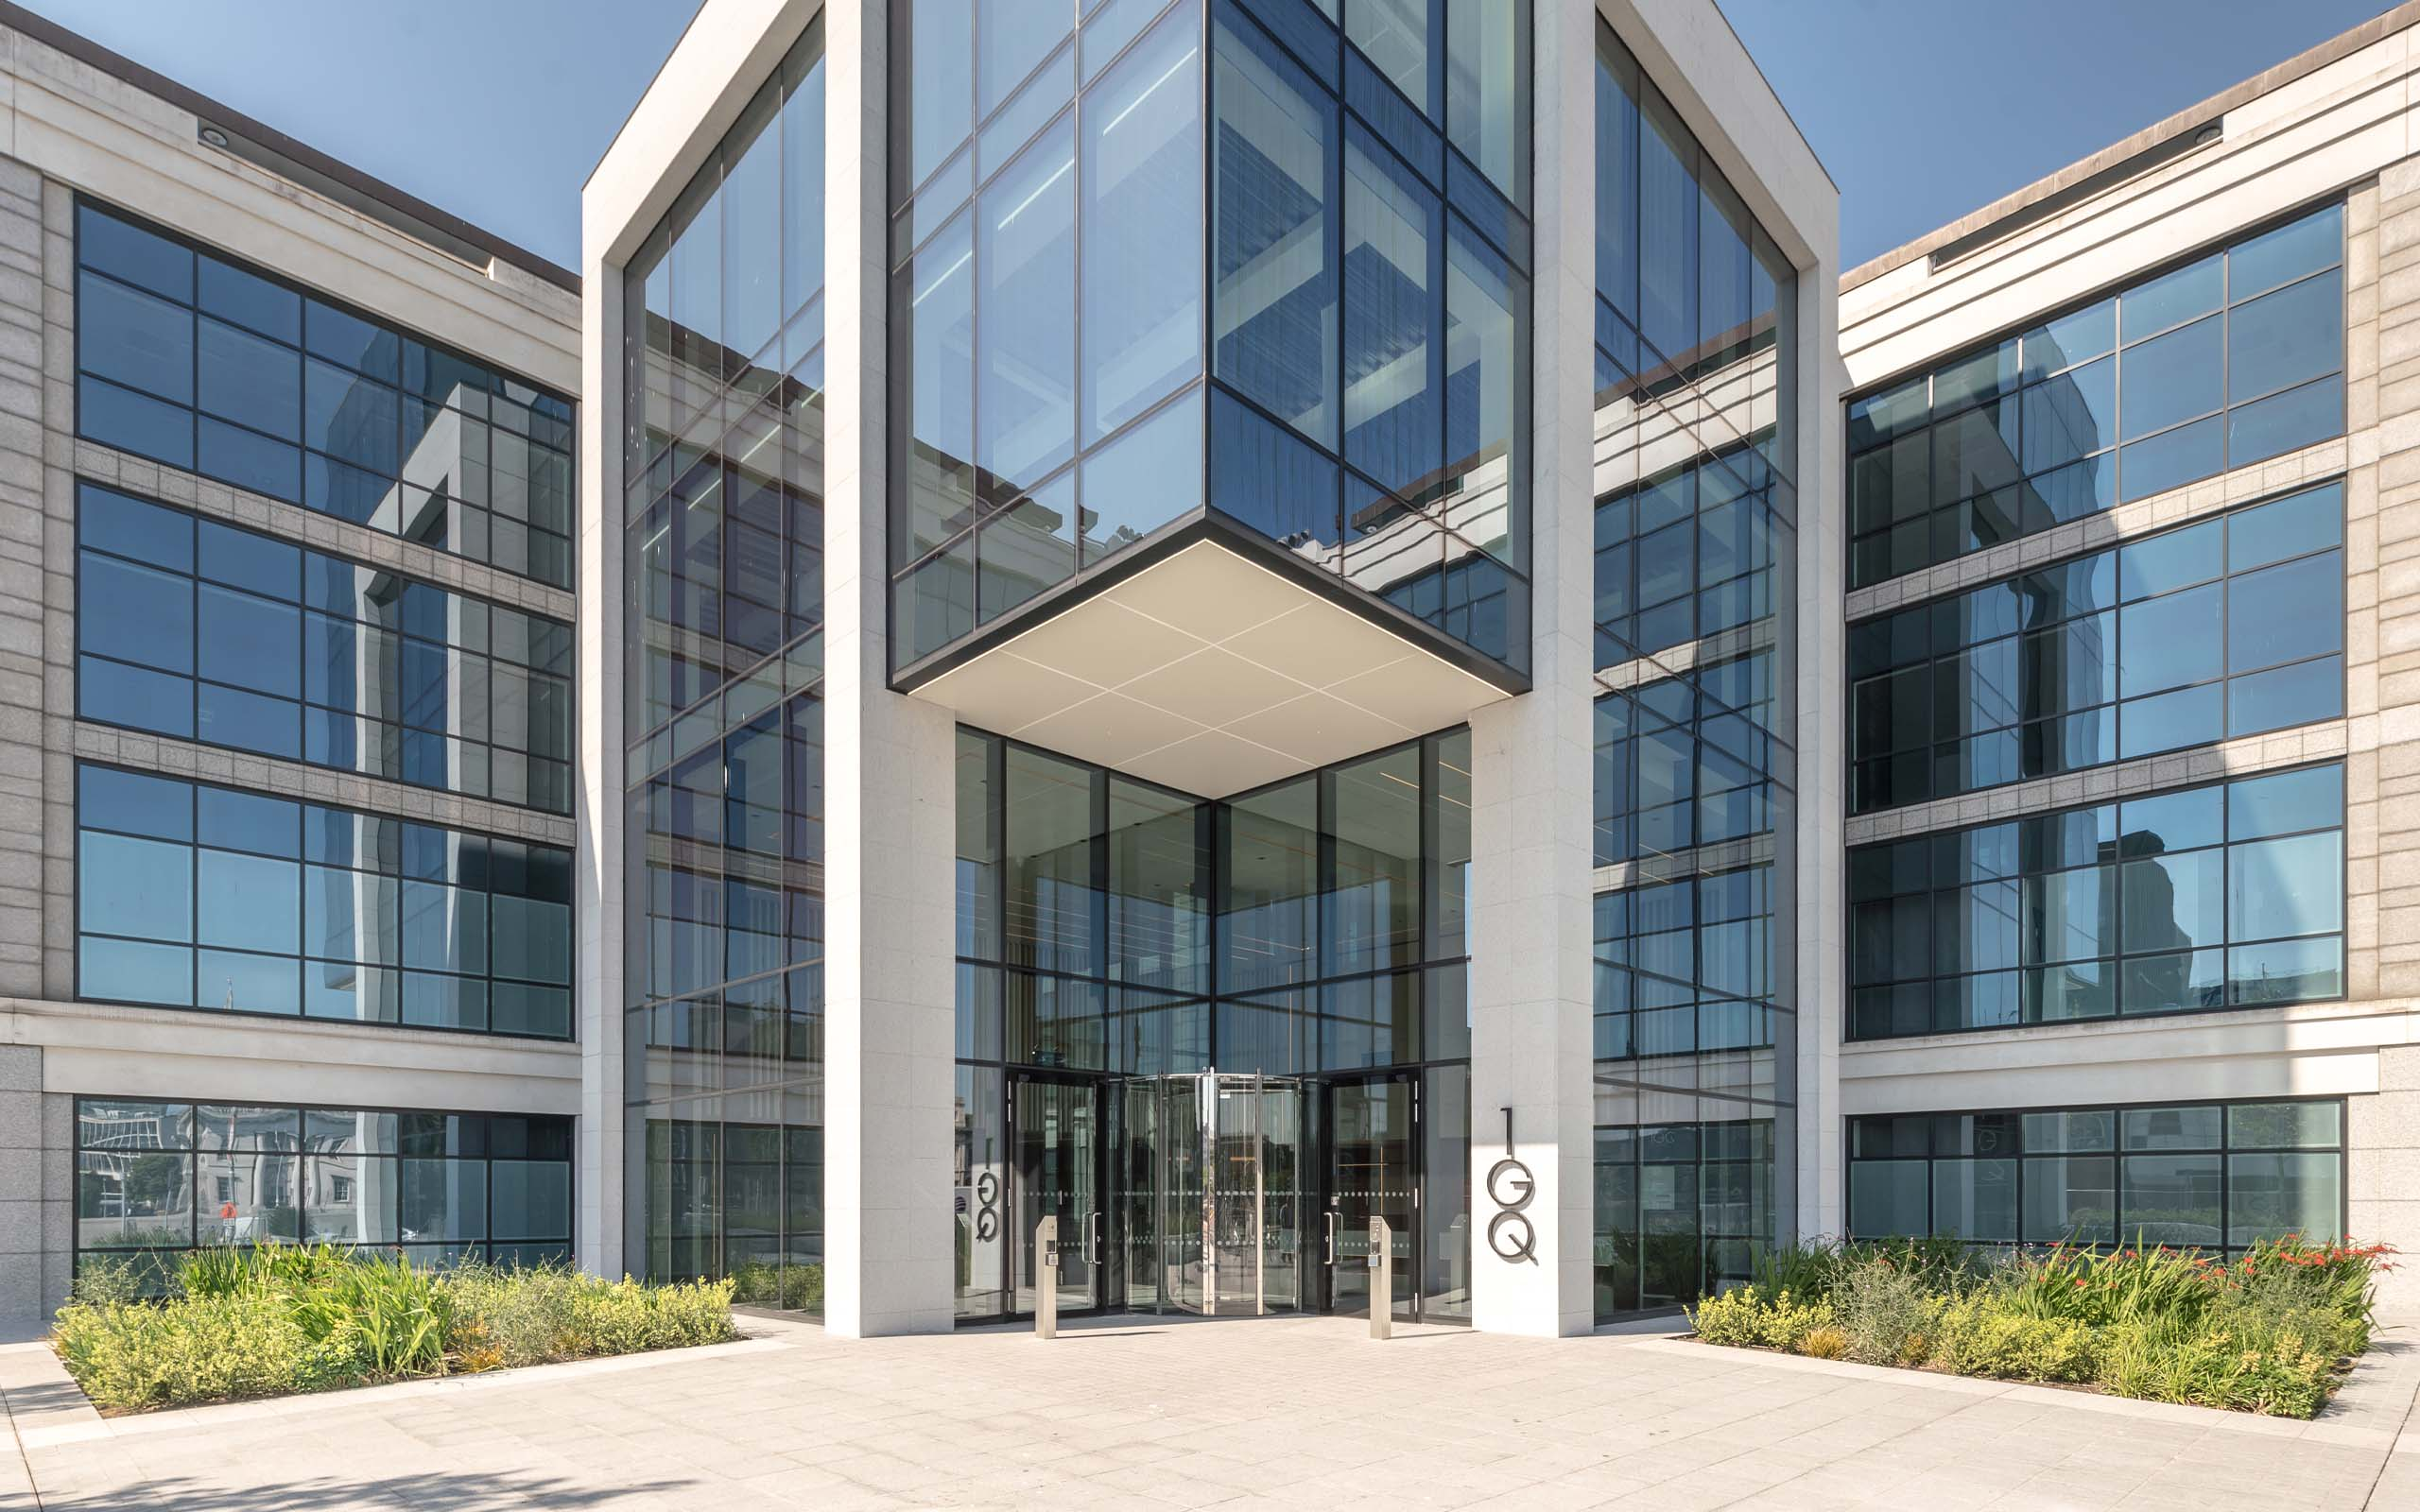 Commercial Photography of the 1GQ Building in Dublin City.